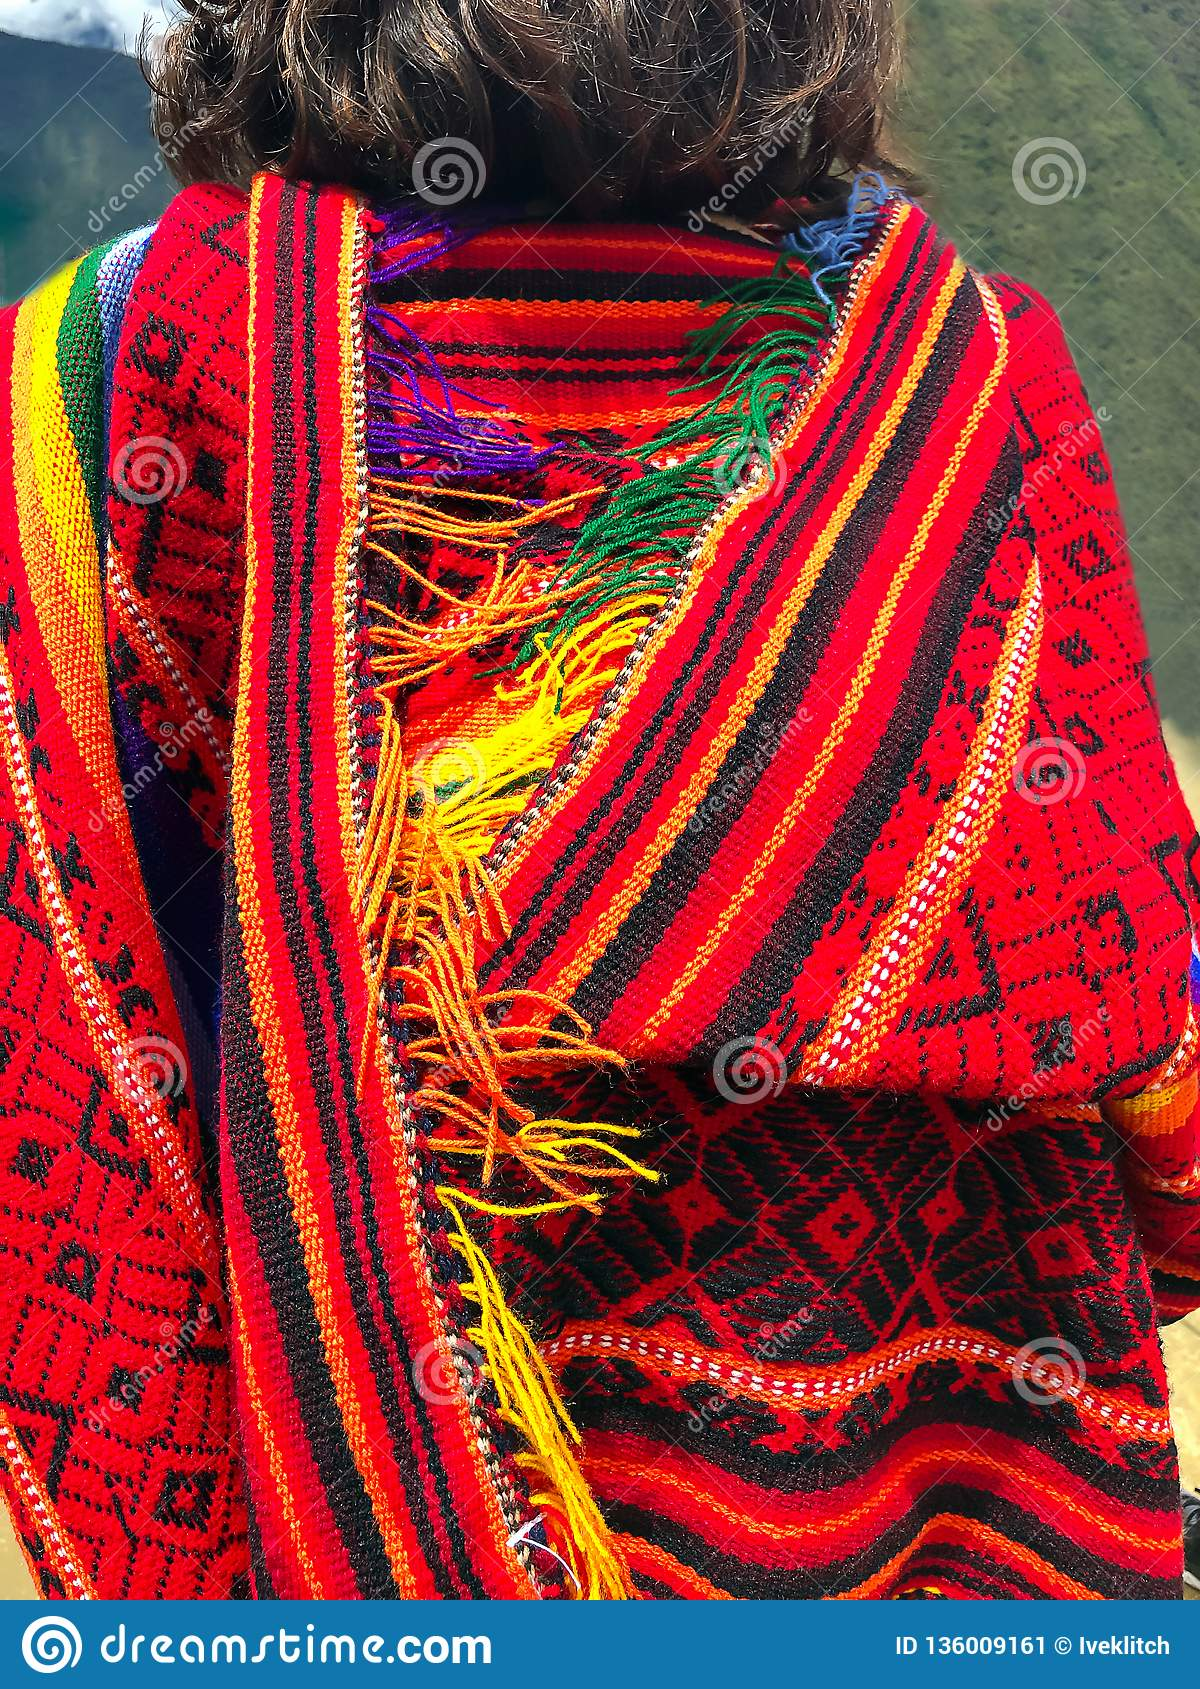 Female traveler dressed in colorful Peruvian poncho in Machu Picchu, one of the New Seven Wonder of The World, Cusco Region,